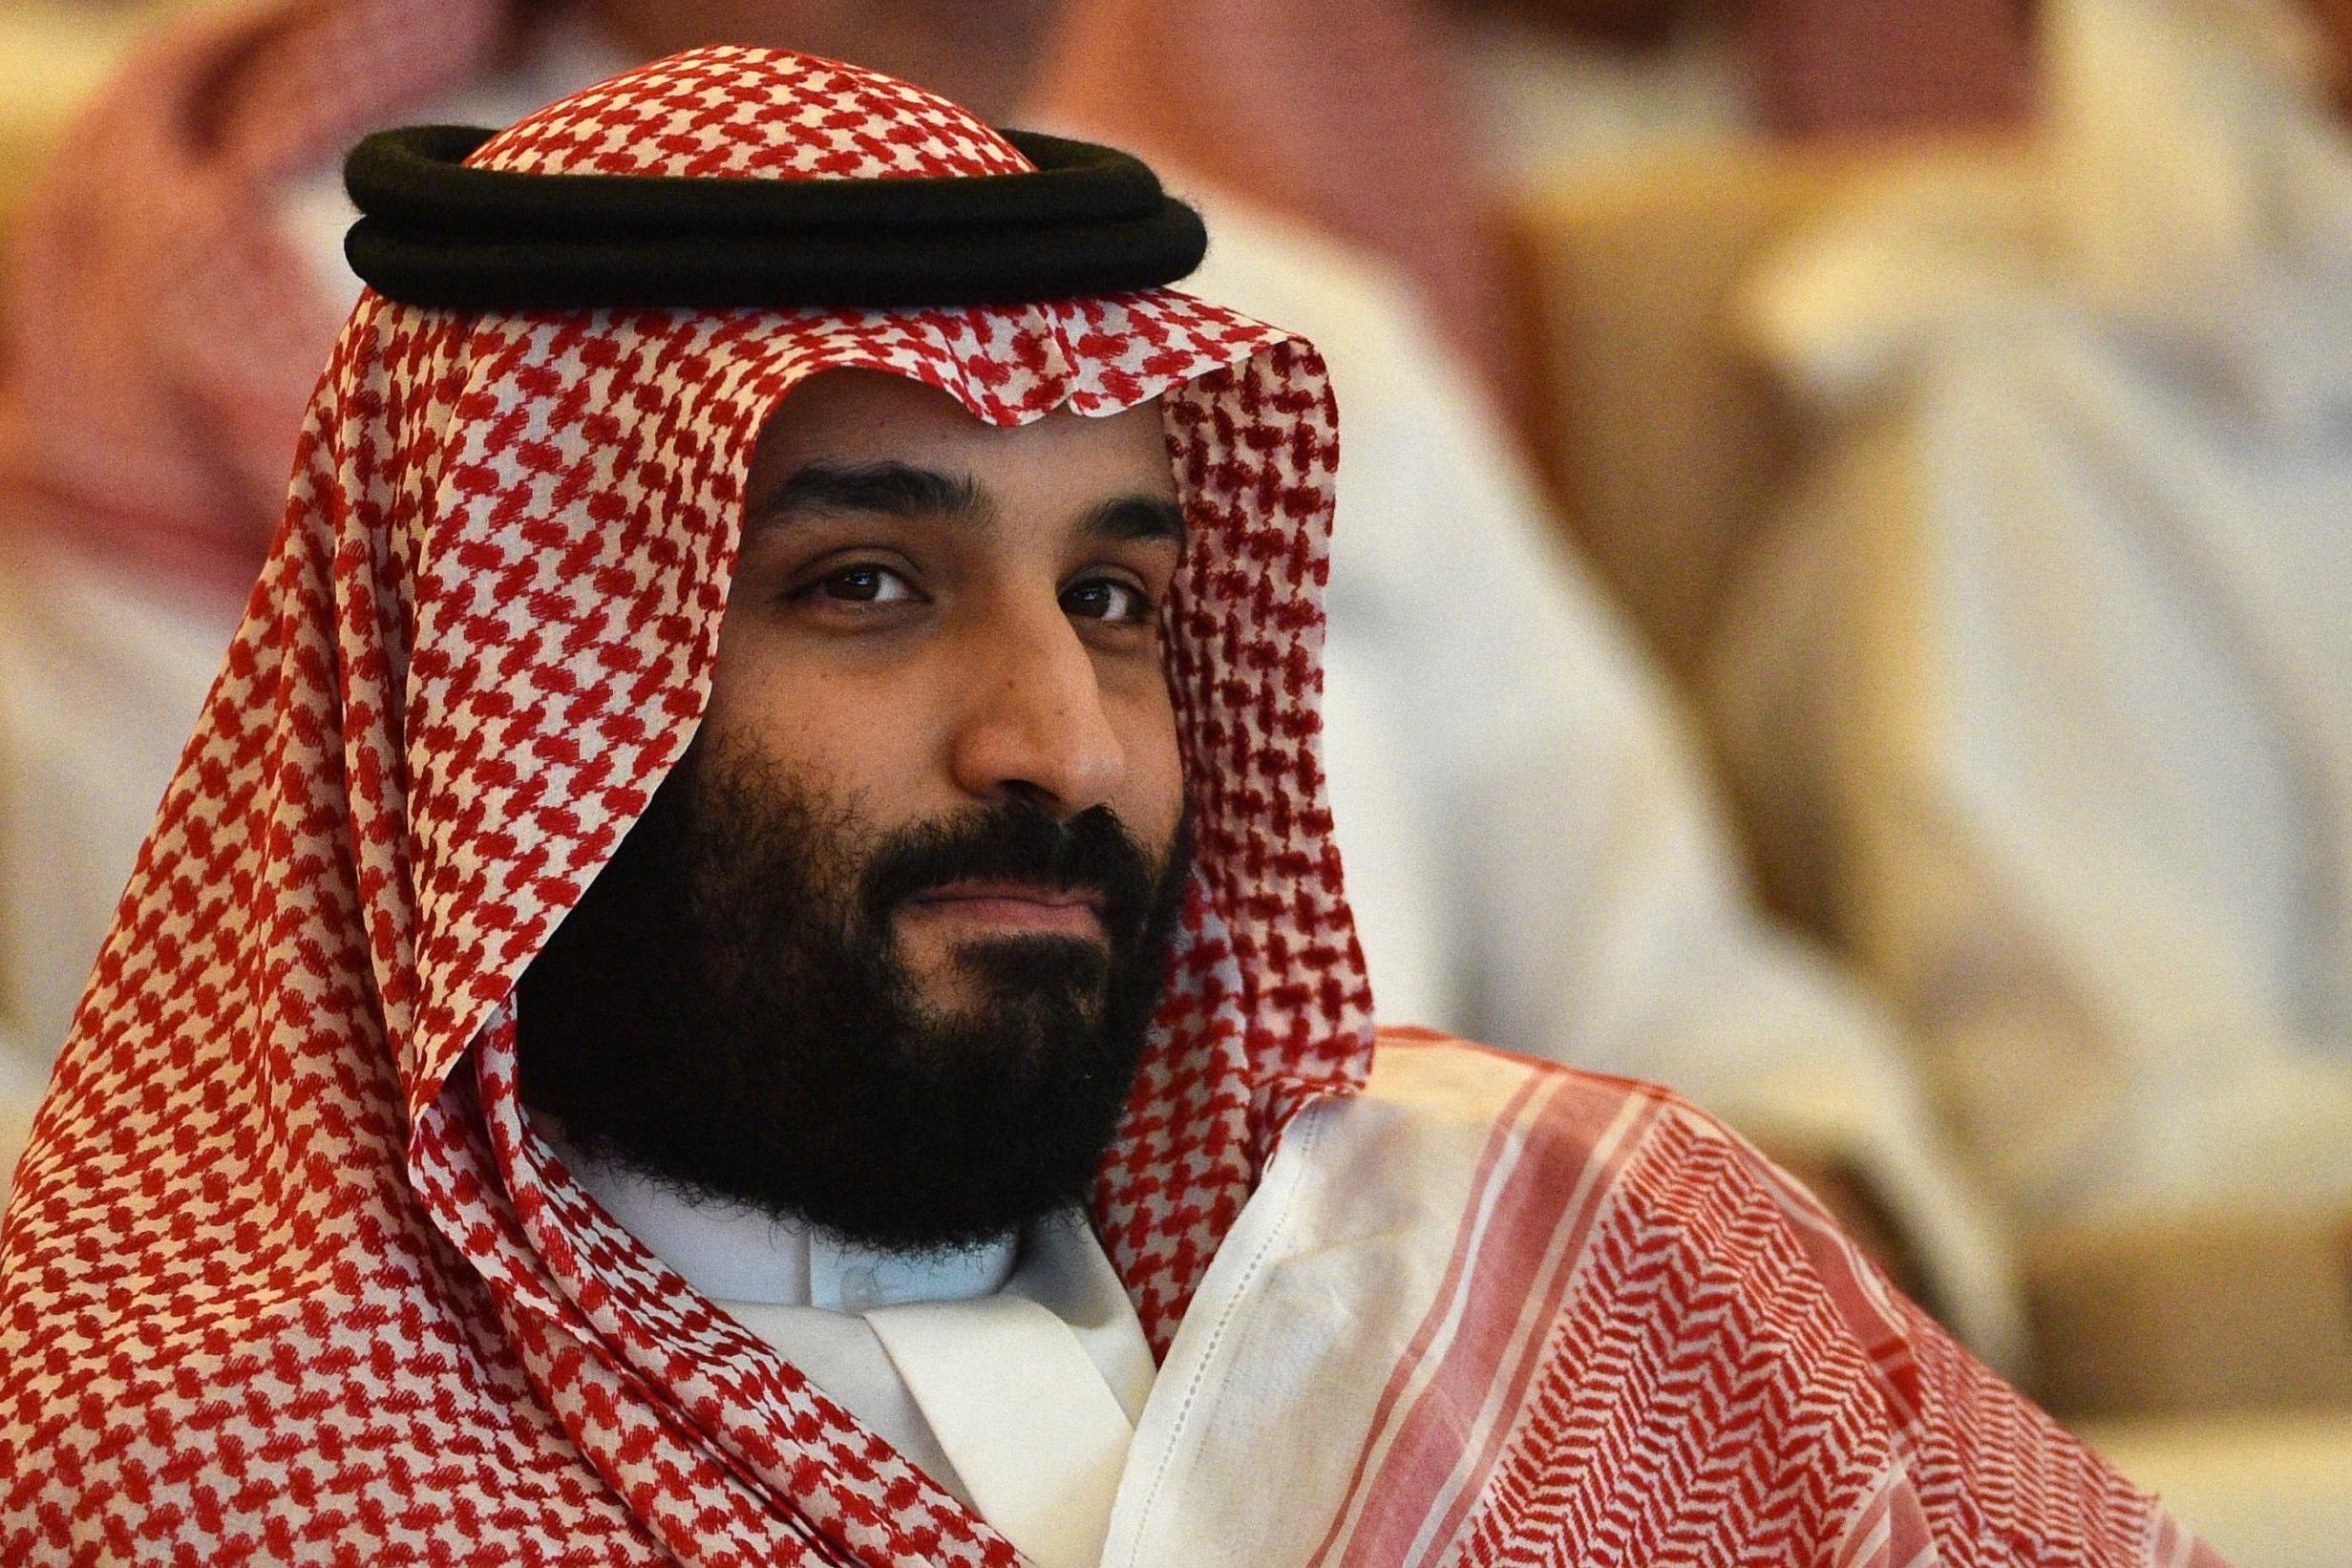 Patrick Cockburn: What Saudi Arabia's Mohammed bin Salman could learn from Prince Andrew